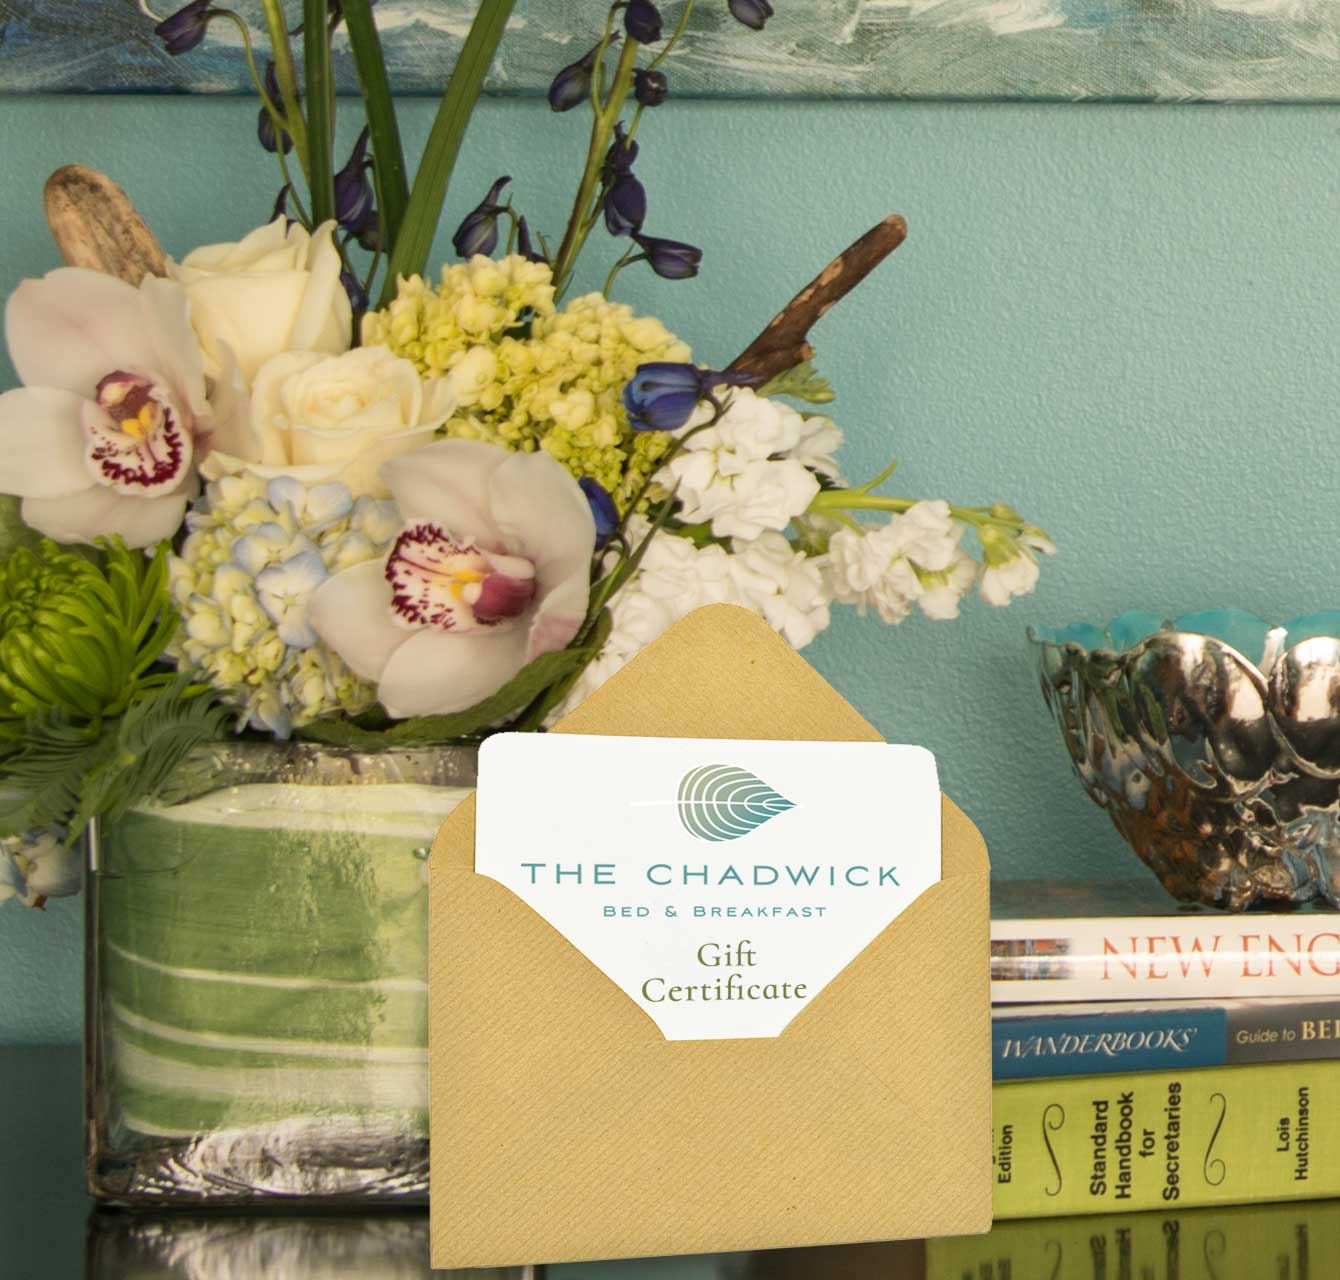 The Chadwick Bed & Breakfast Gift Certificate